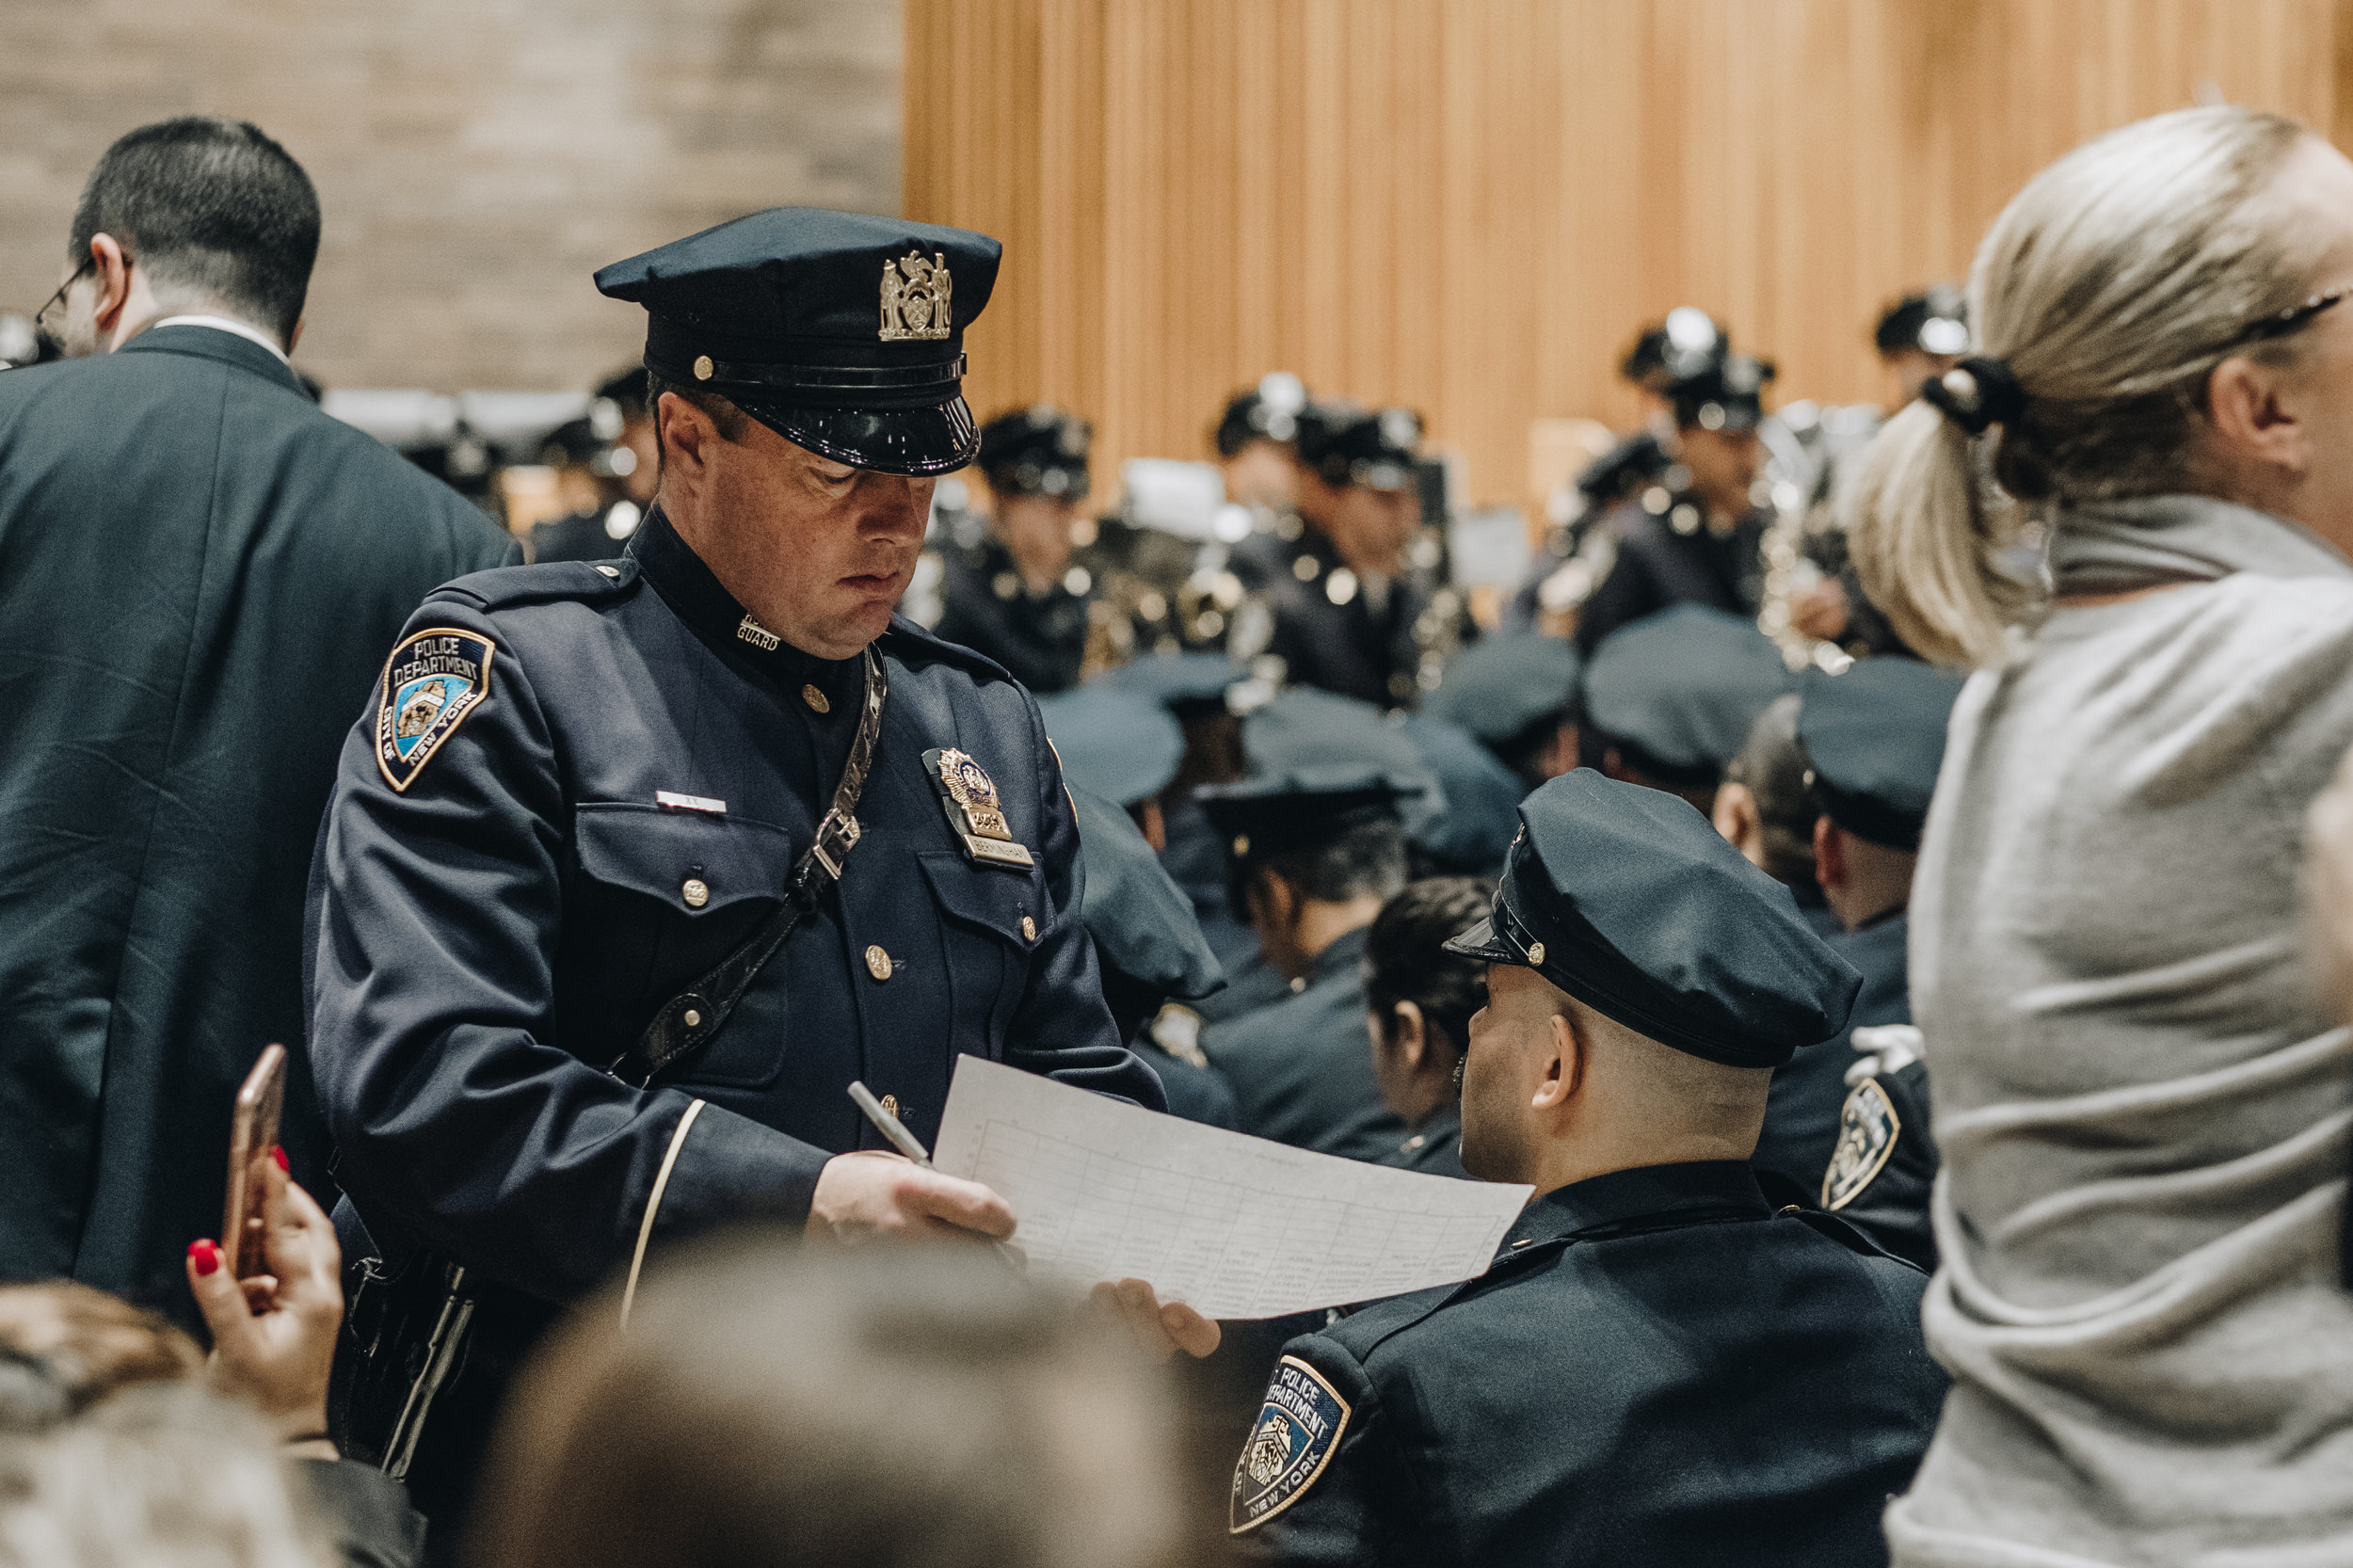 NYPD_Promotions-20.jpg